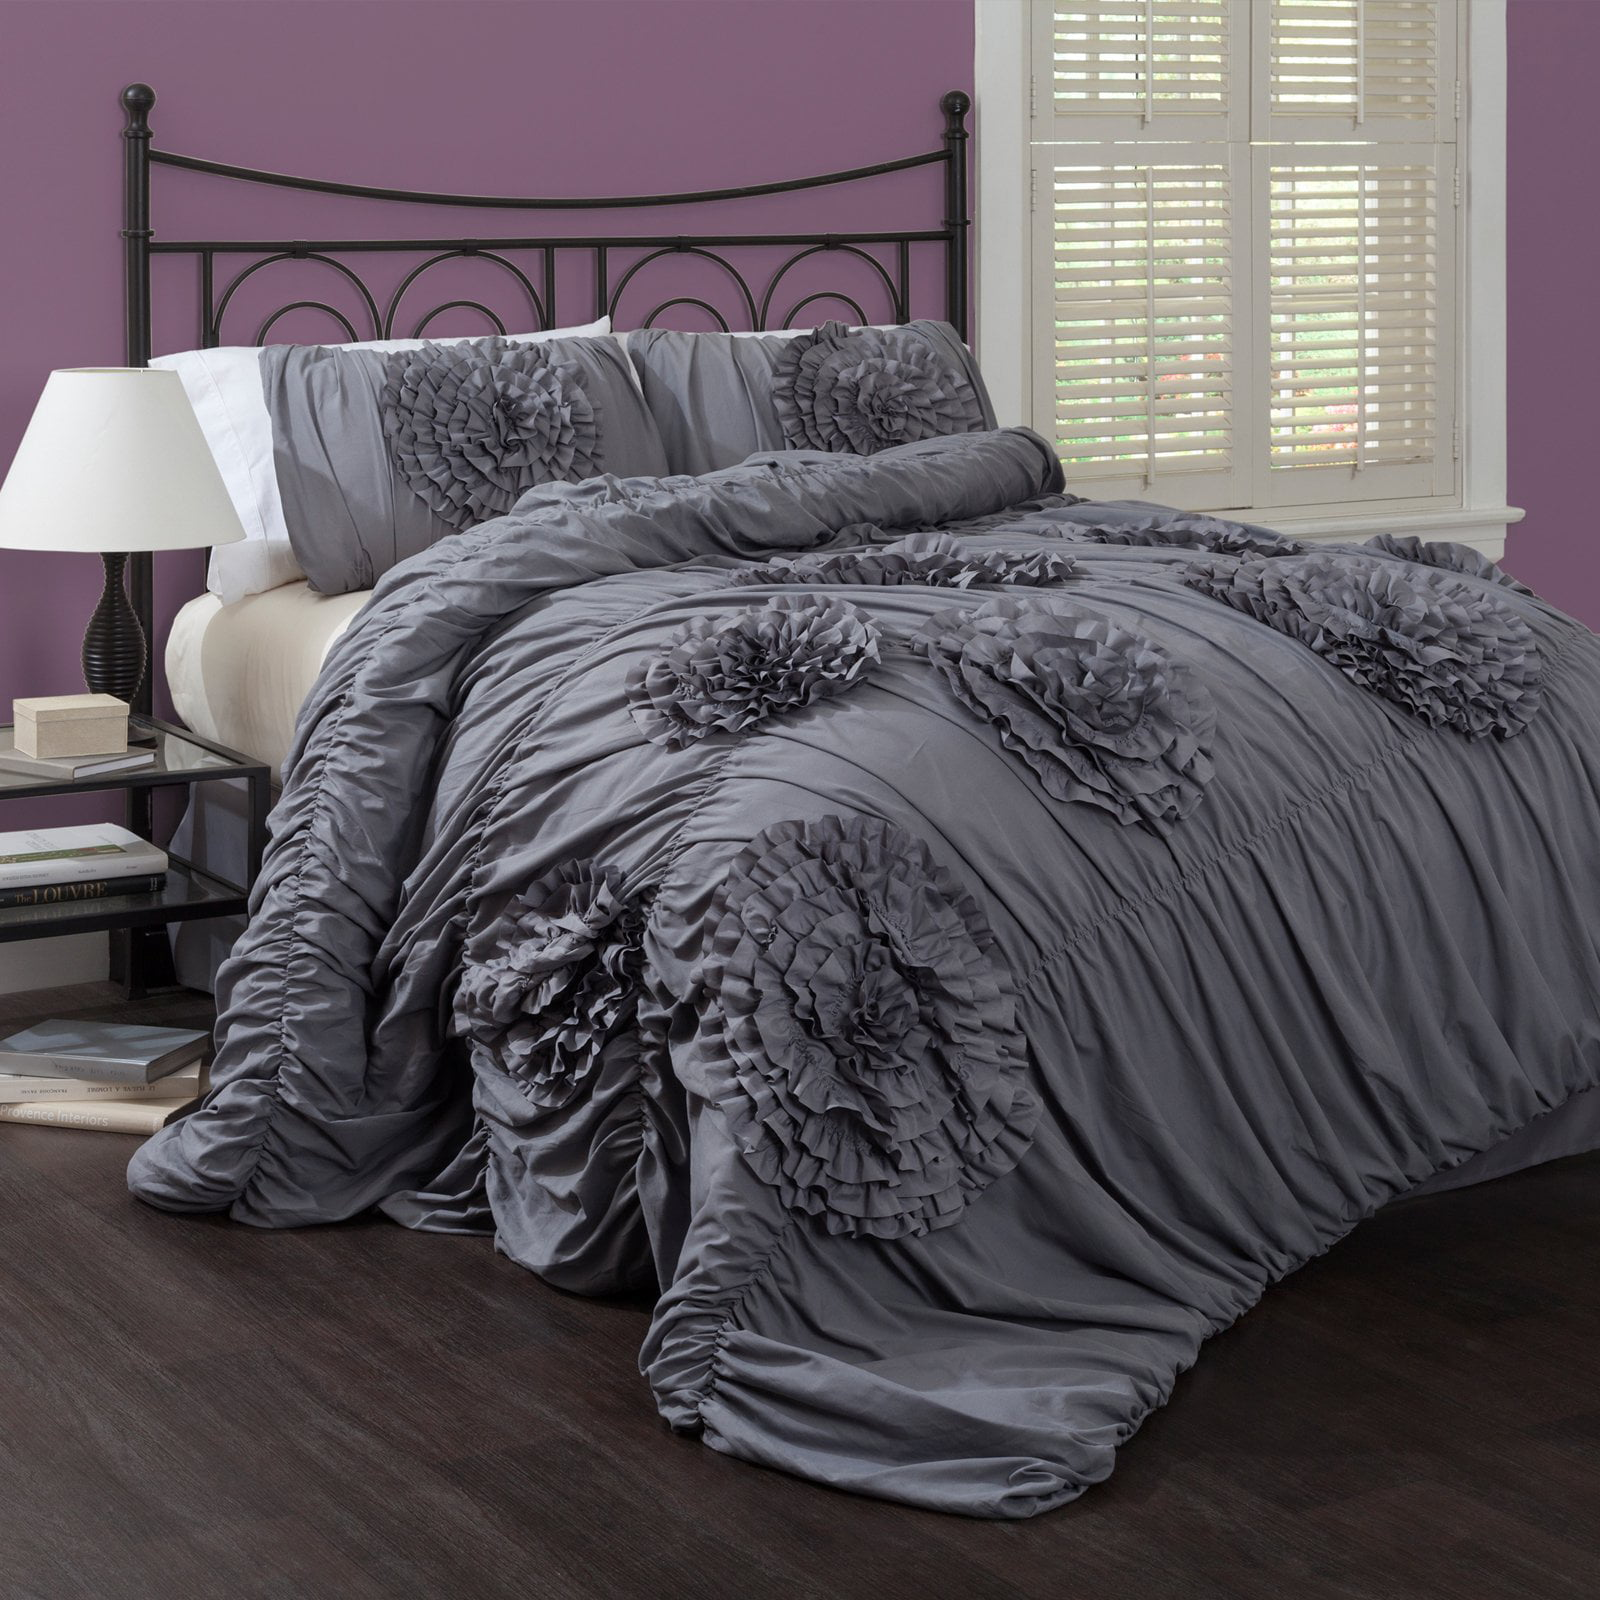 Cheap Queen Size Comforter Sets Cheaper Than Retail Price Buy Clothing Accessories And Lifestyle Products For Women Men